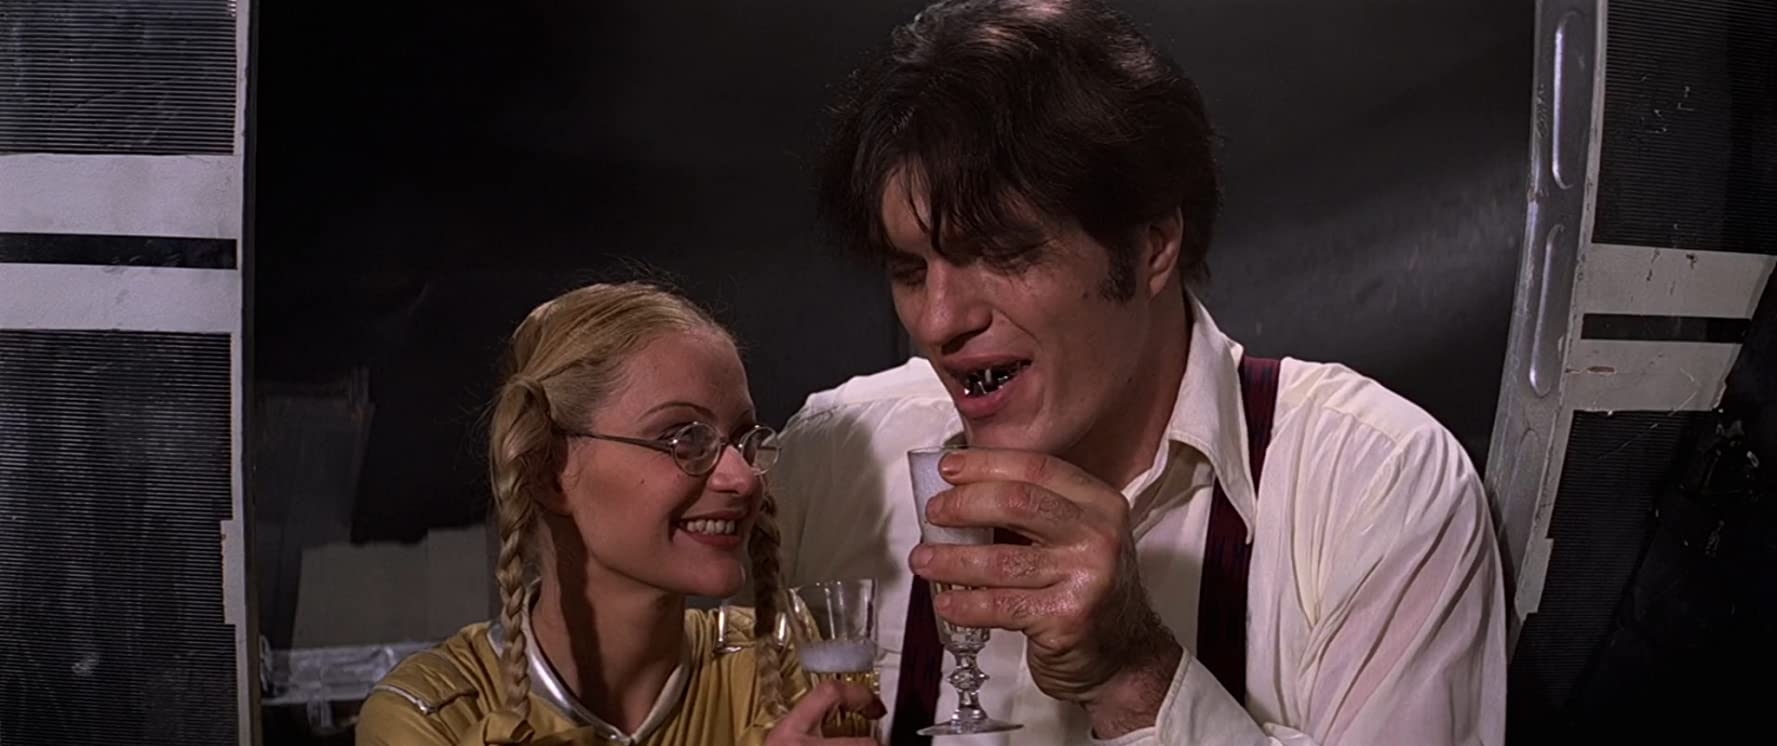 Richard Kiel and Blanche Ravalec in Moonraker 1979